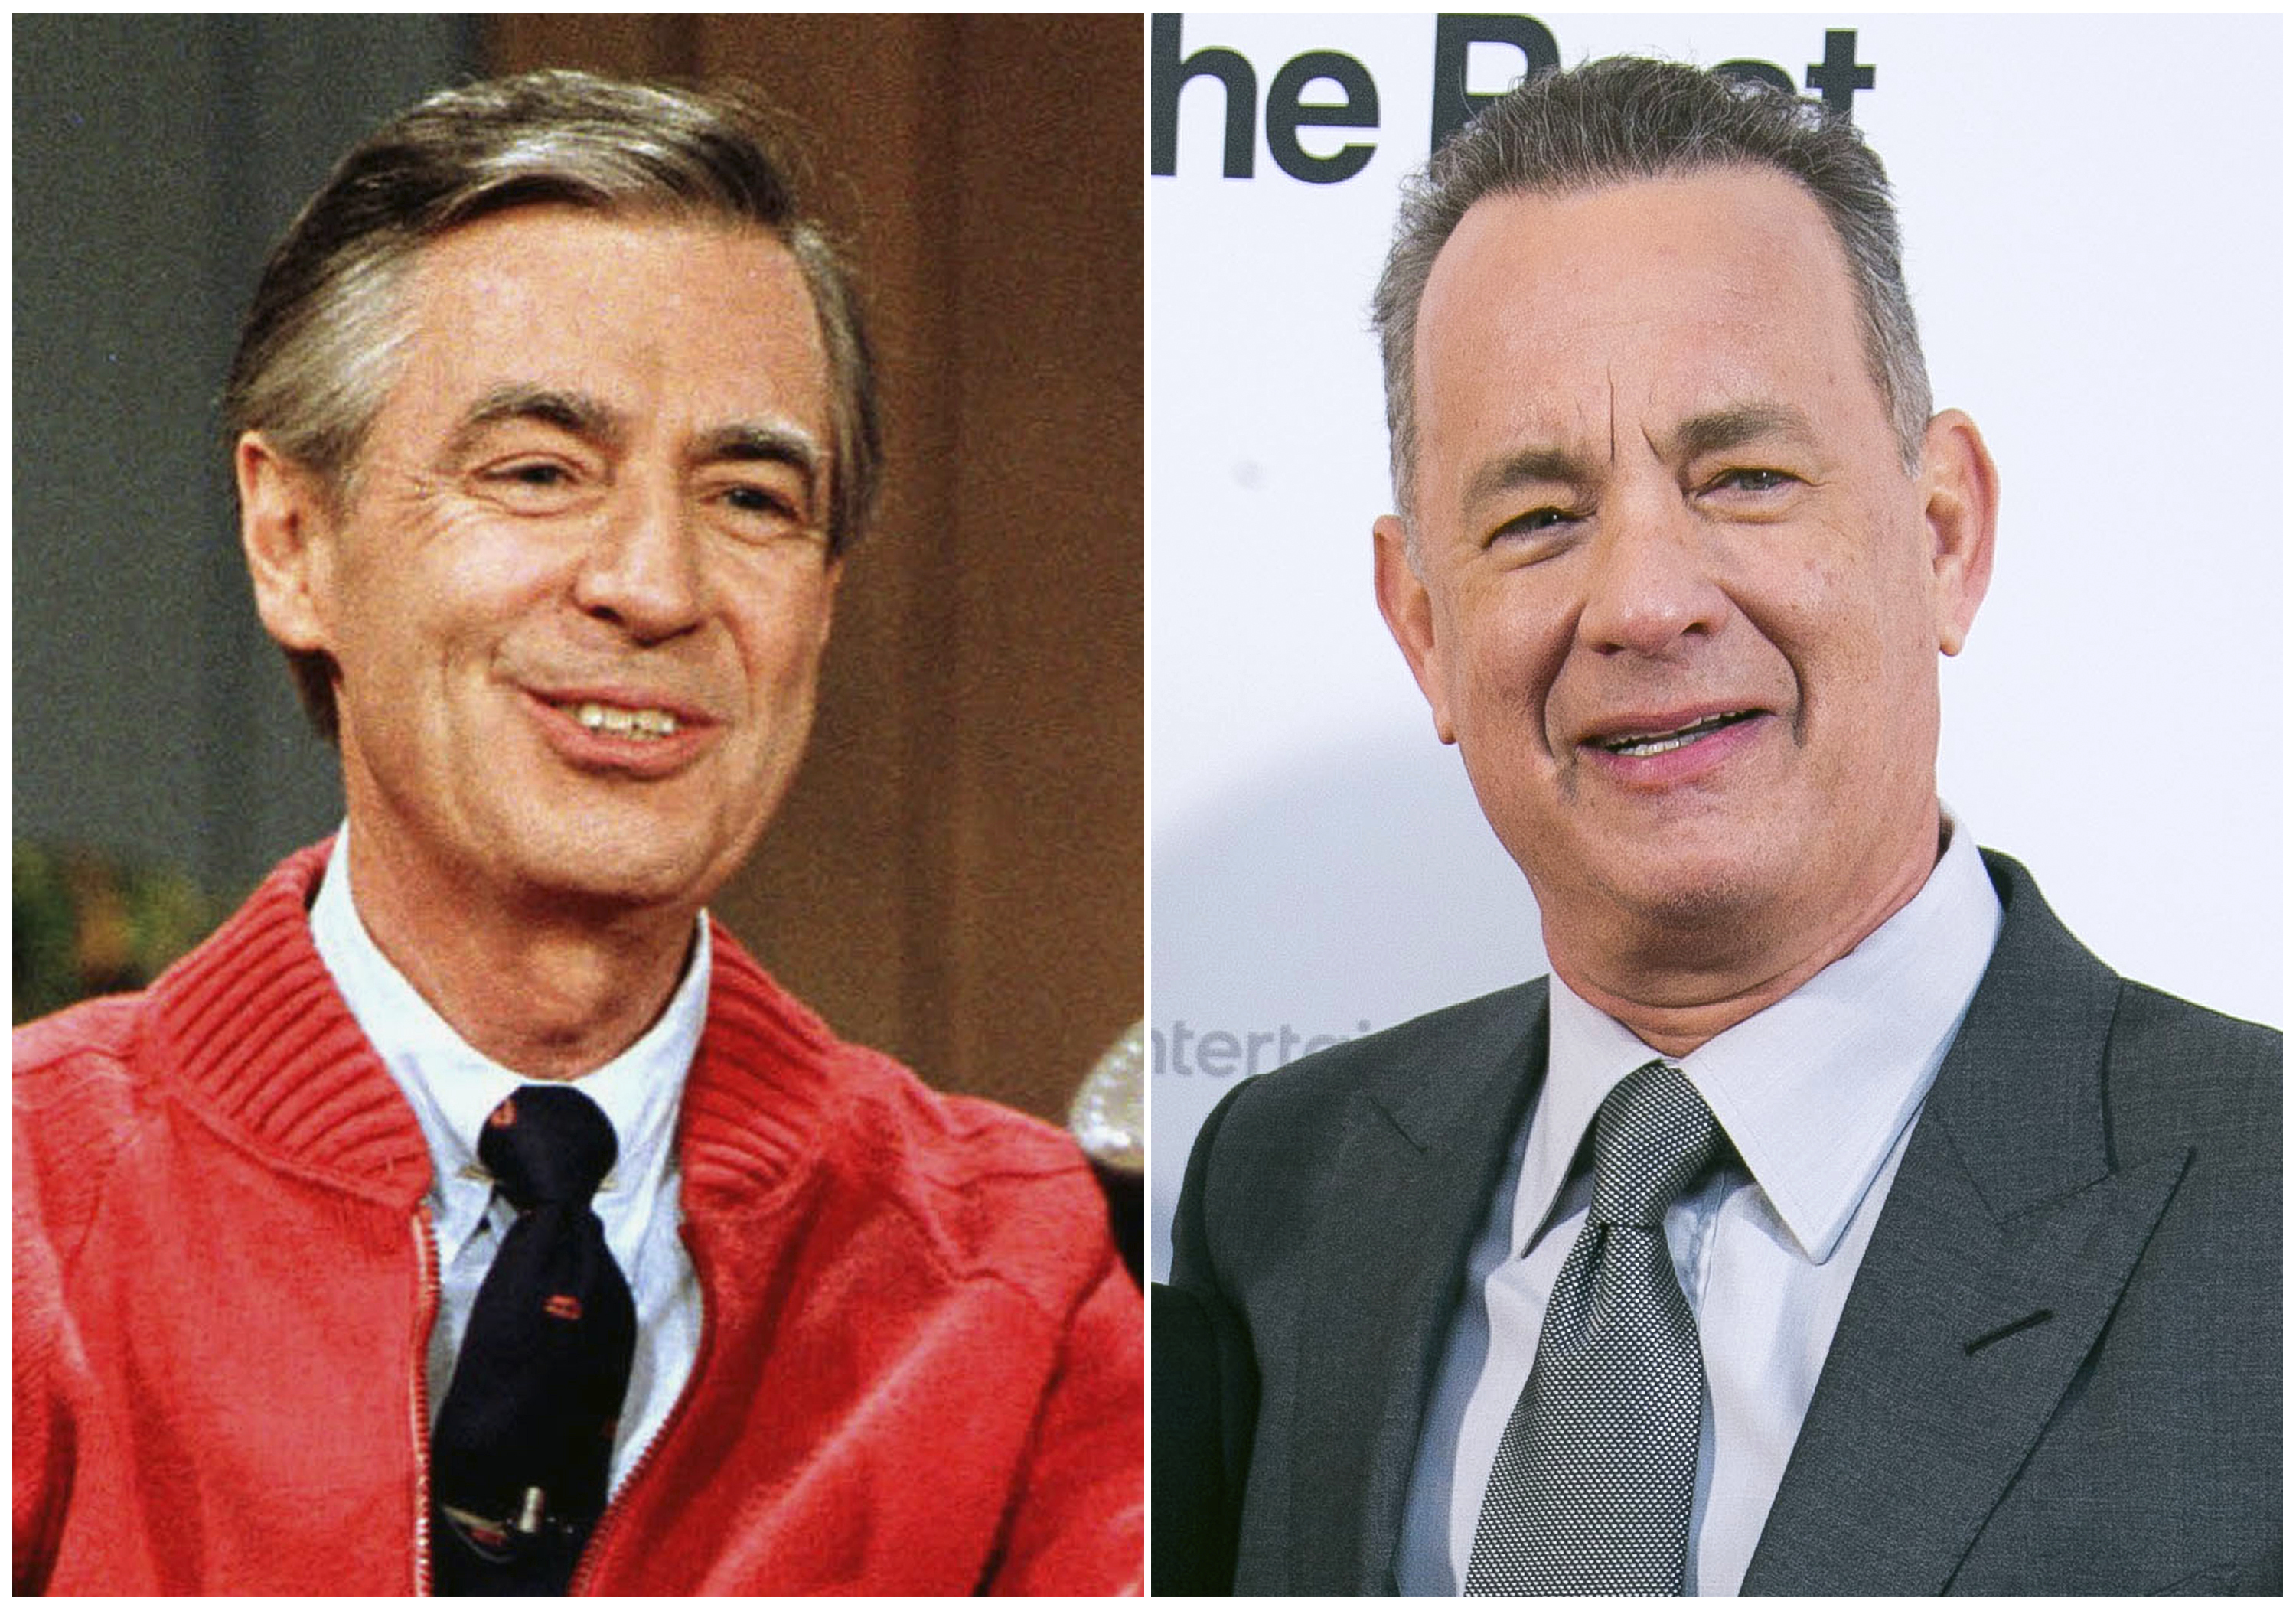 Tom Hanks' Fred Rogers film dated for October 2019 release